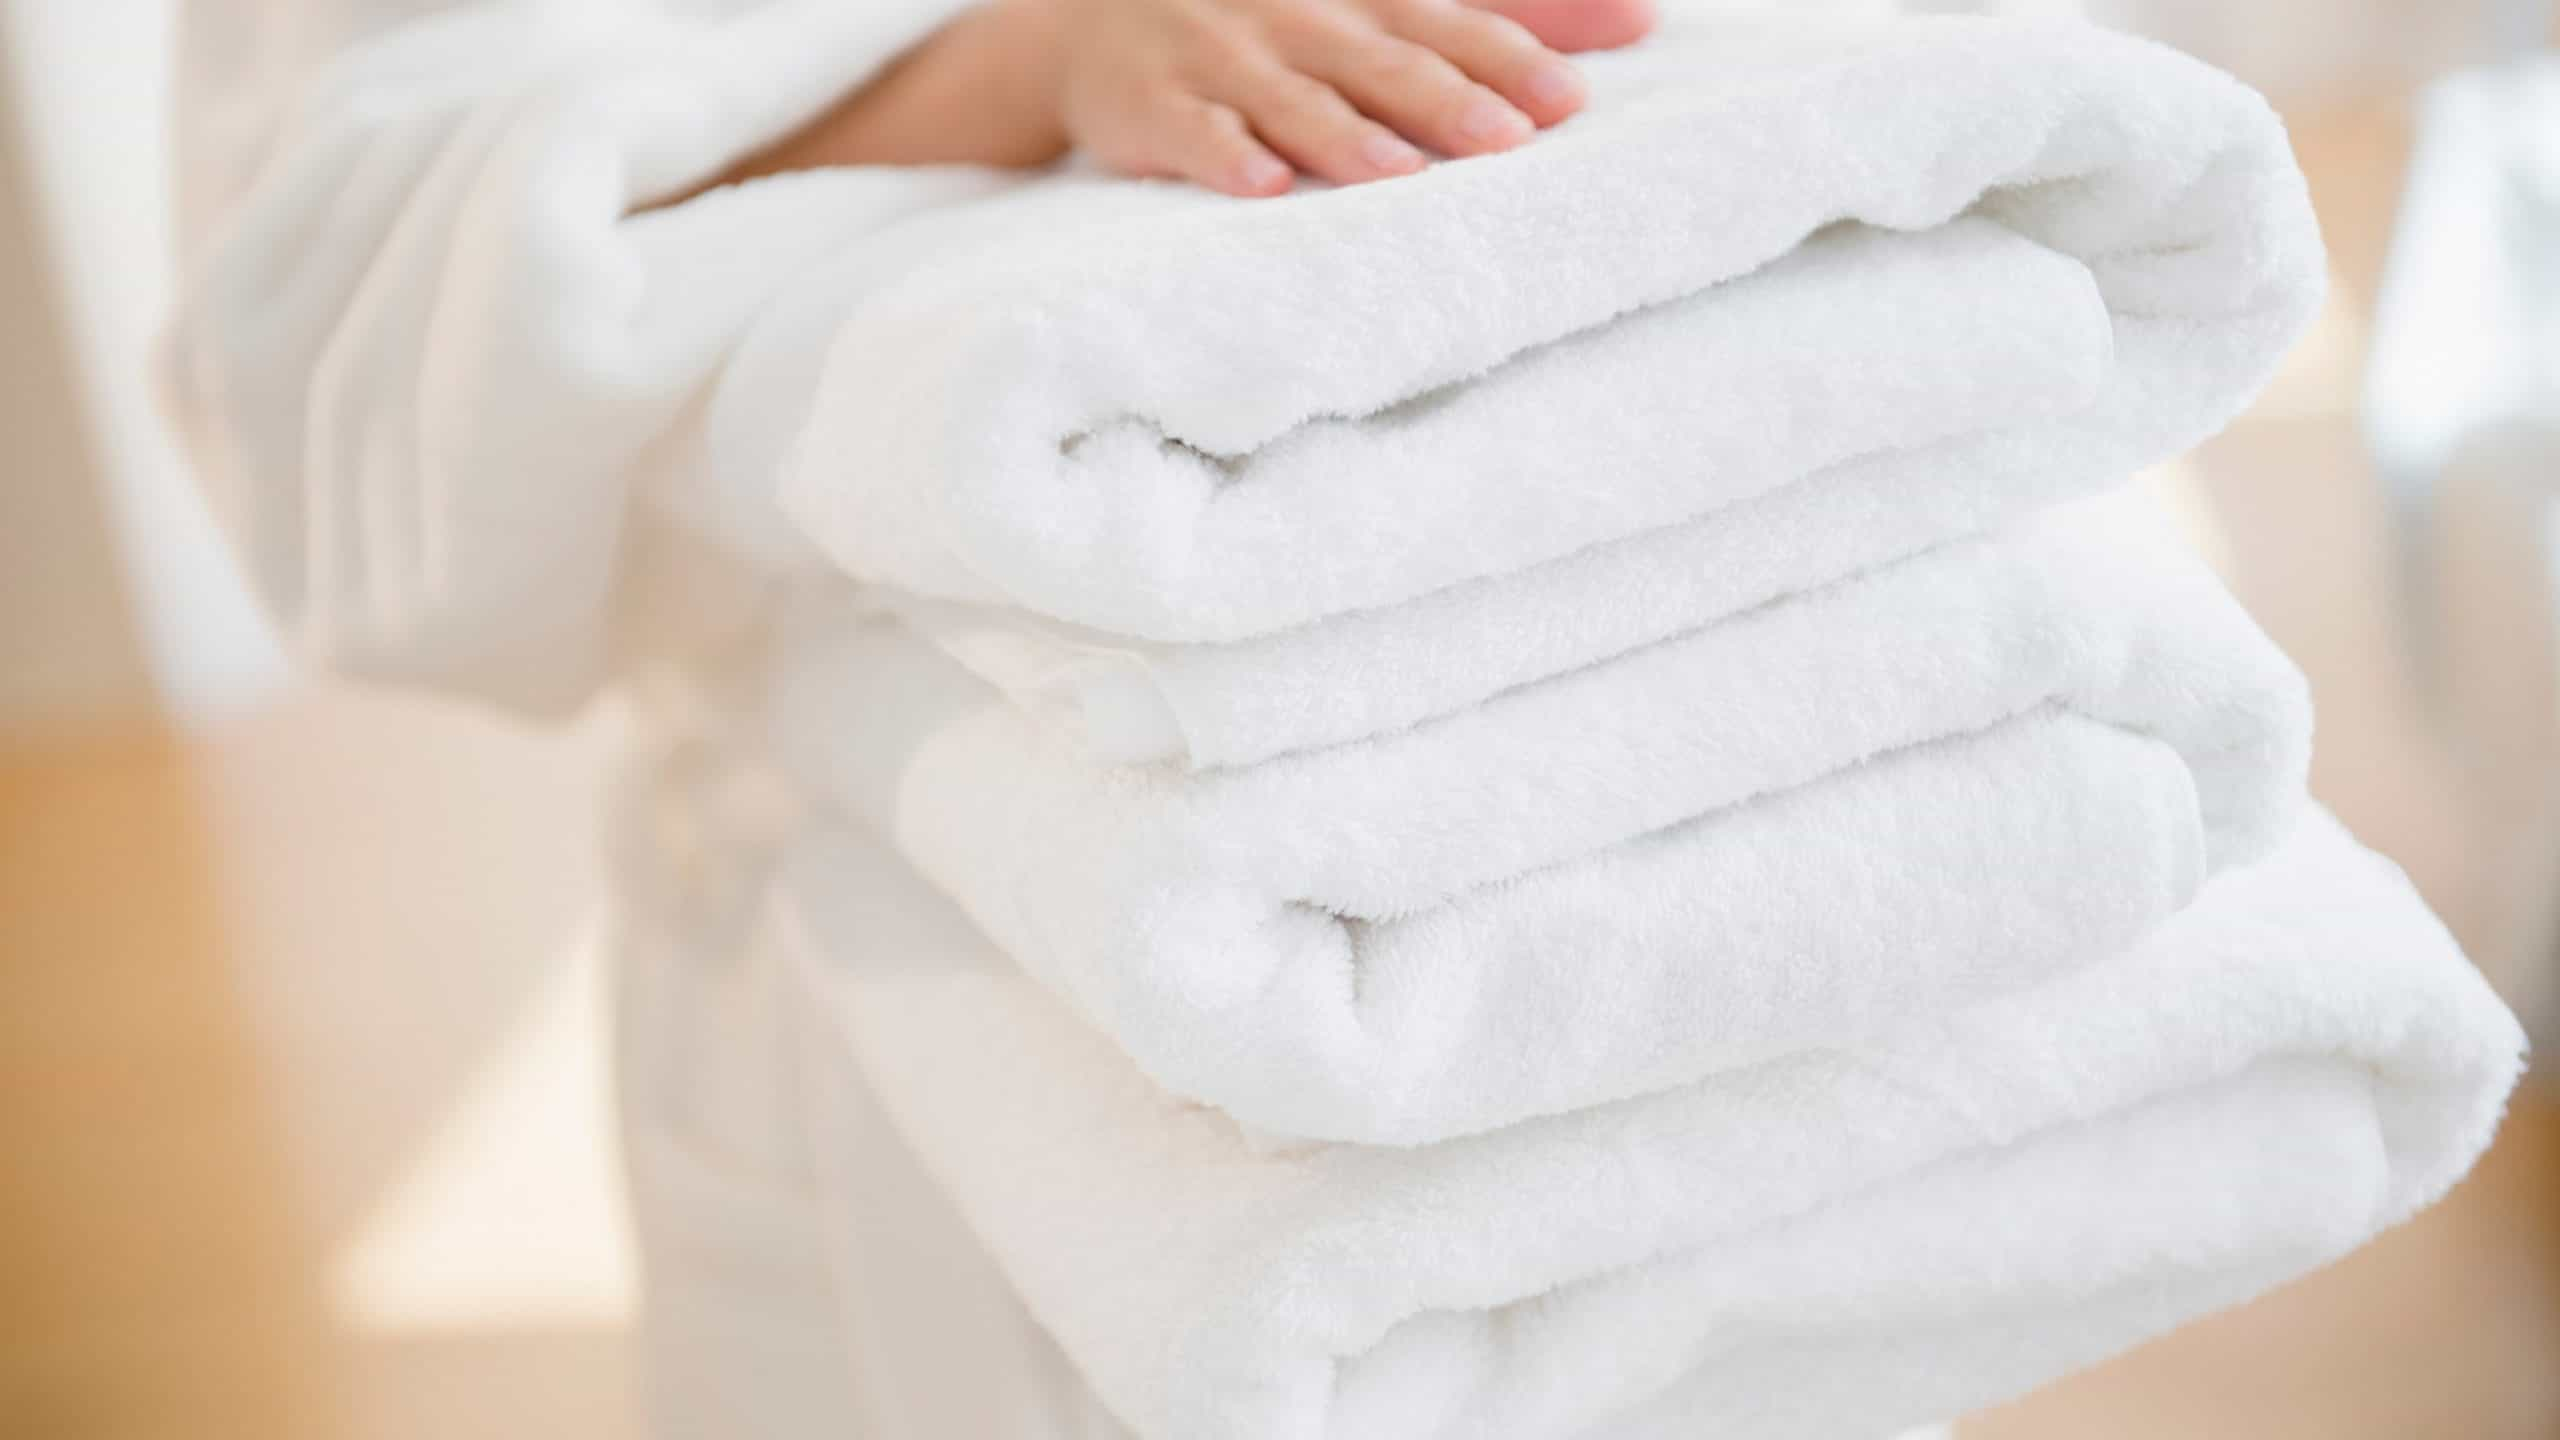 person holding 3 fluffy white towels